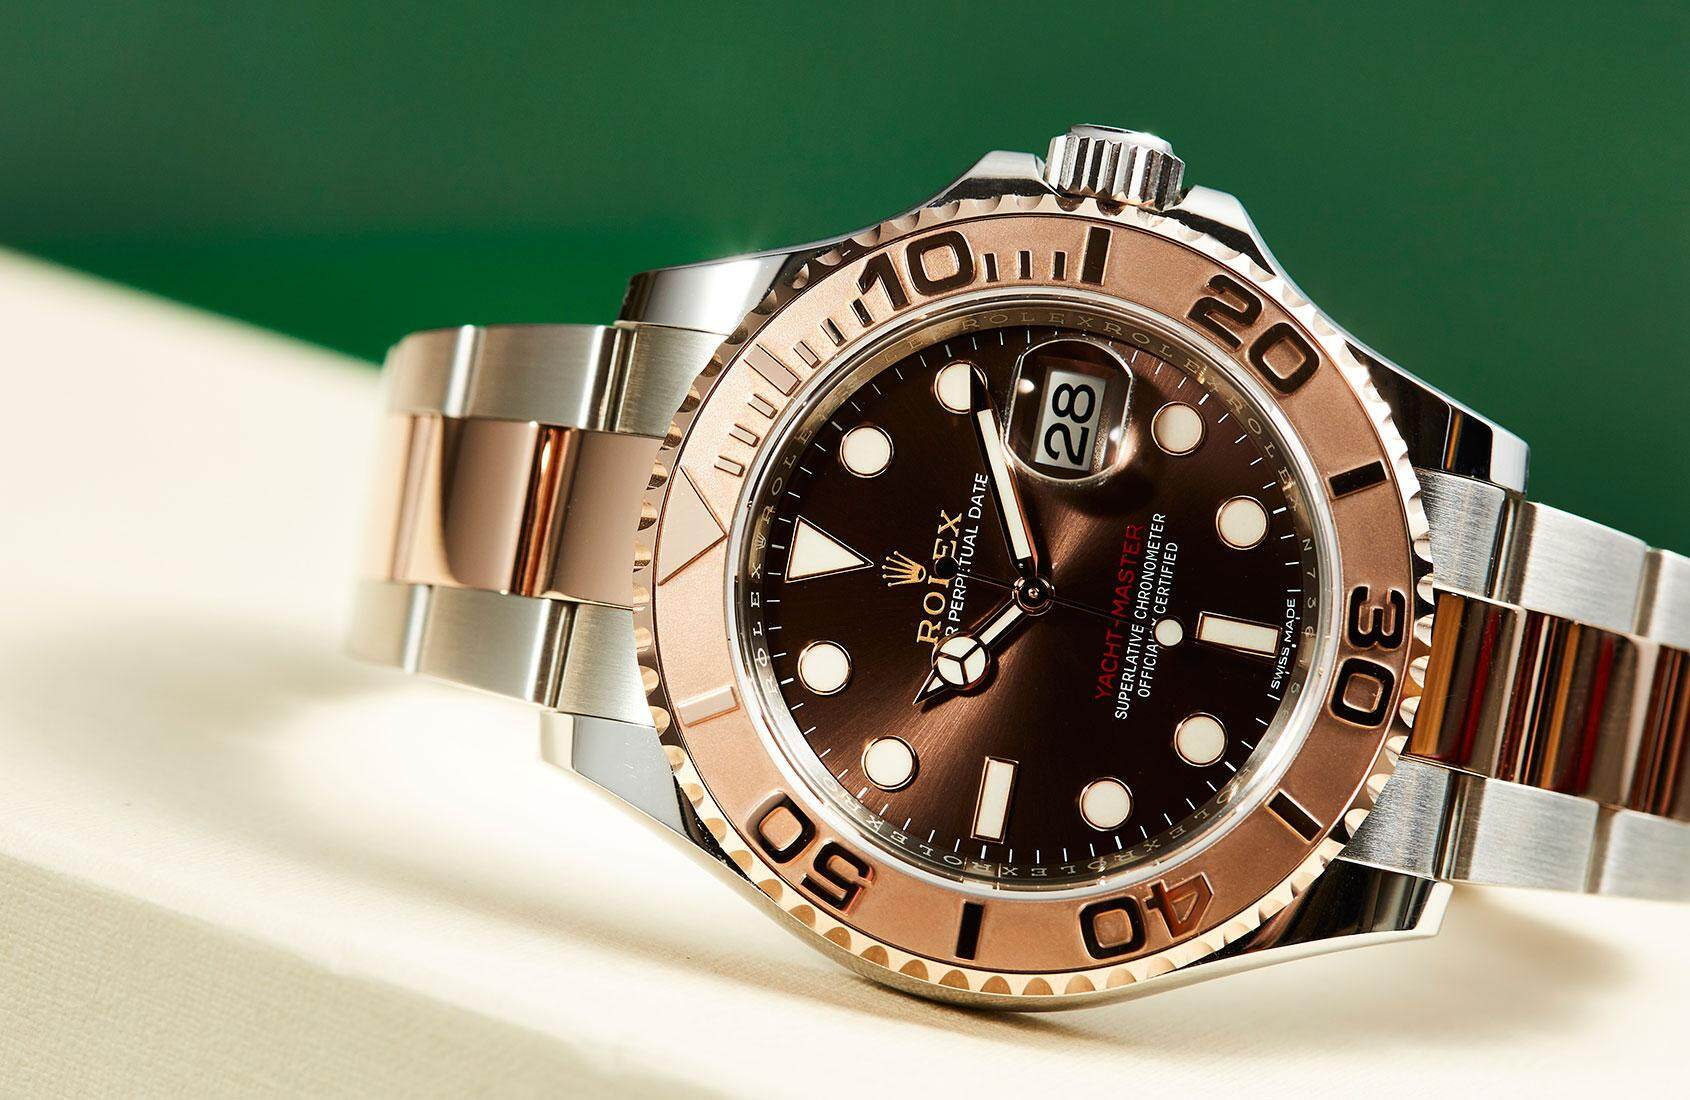 ROLEX YACHT MASTER ( Cheapest Price Guaranteed)